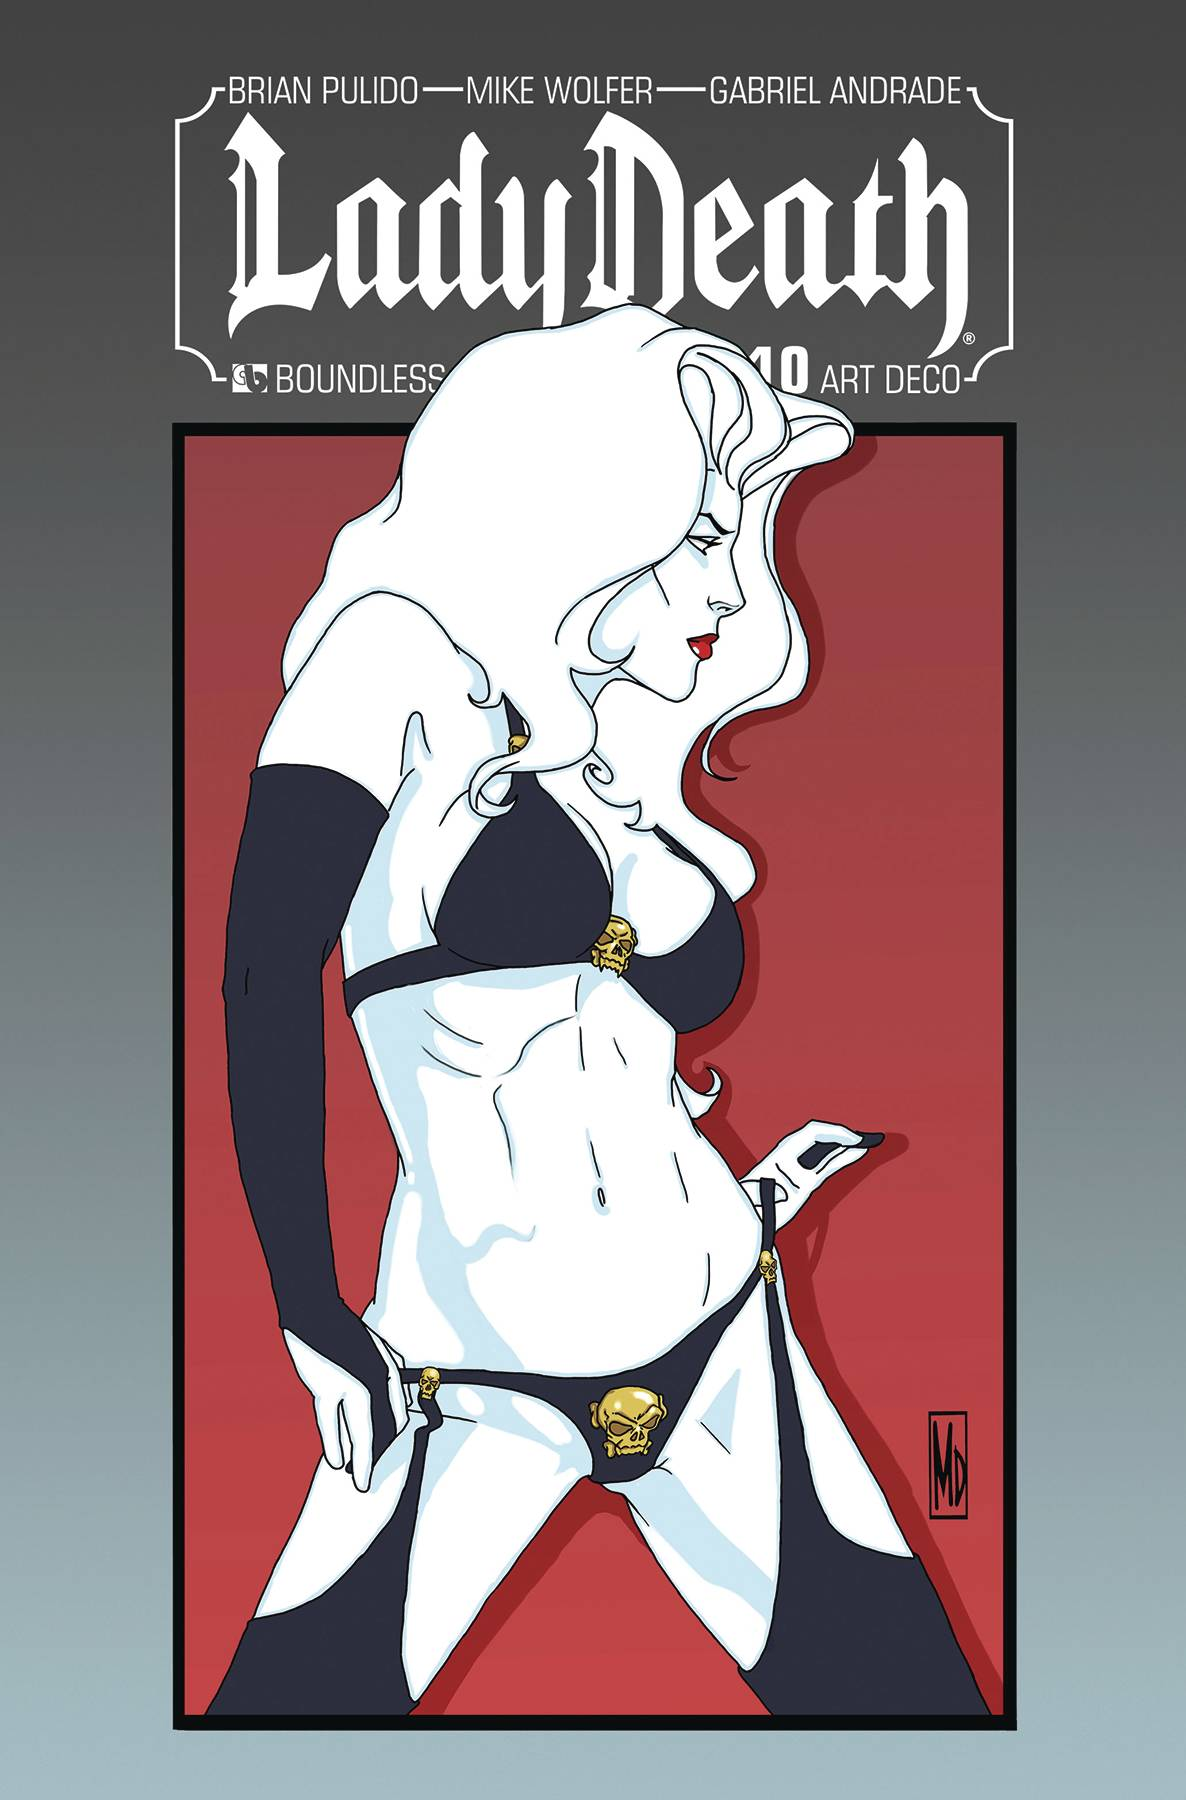 LADY DEATH #10 ART DECO VARIANT